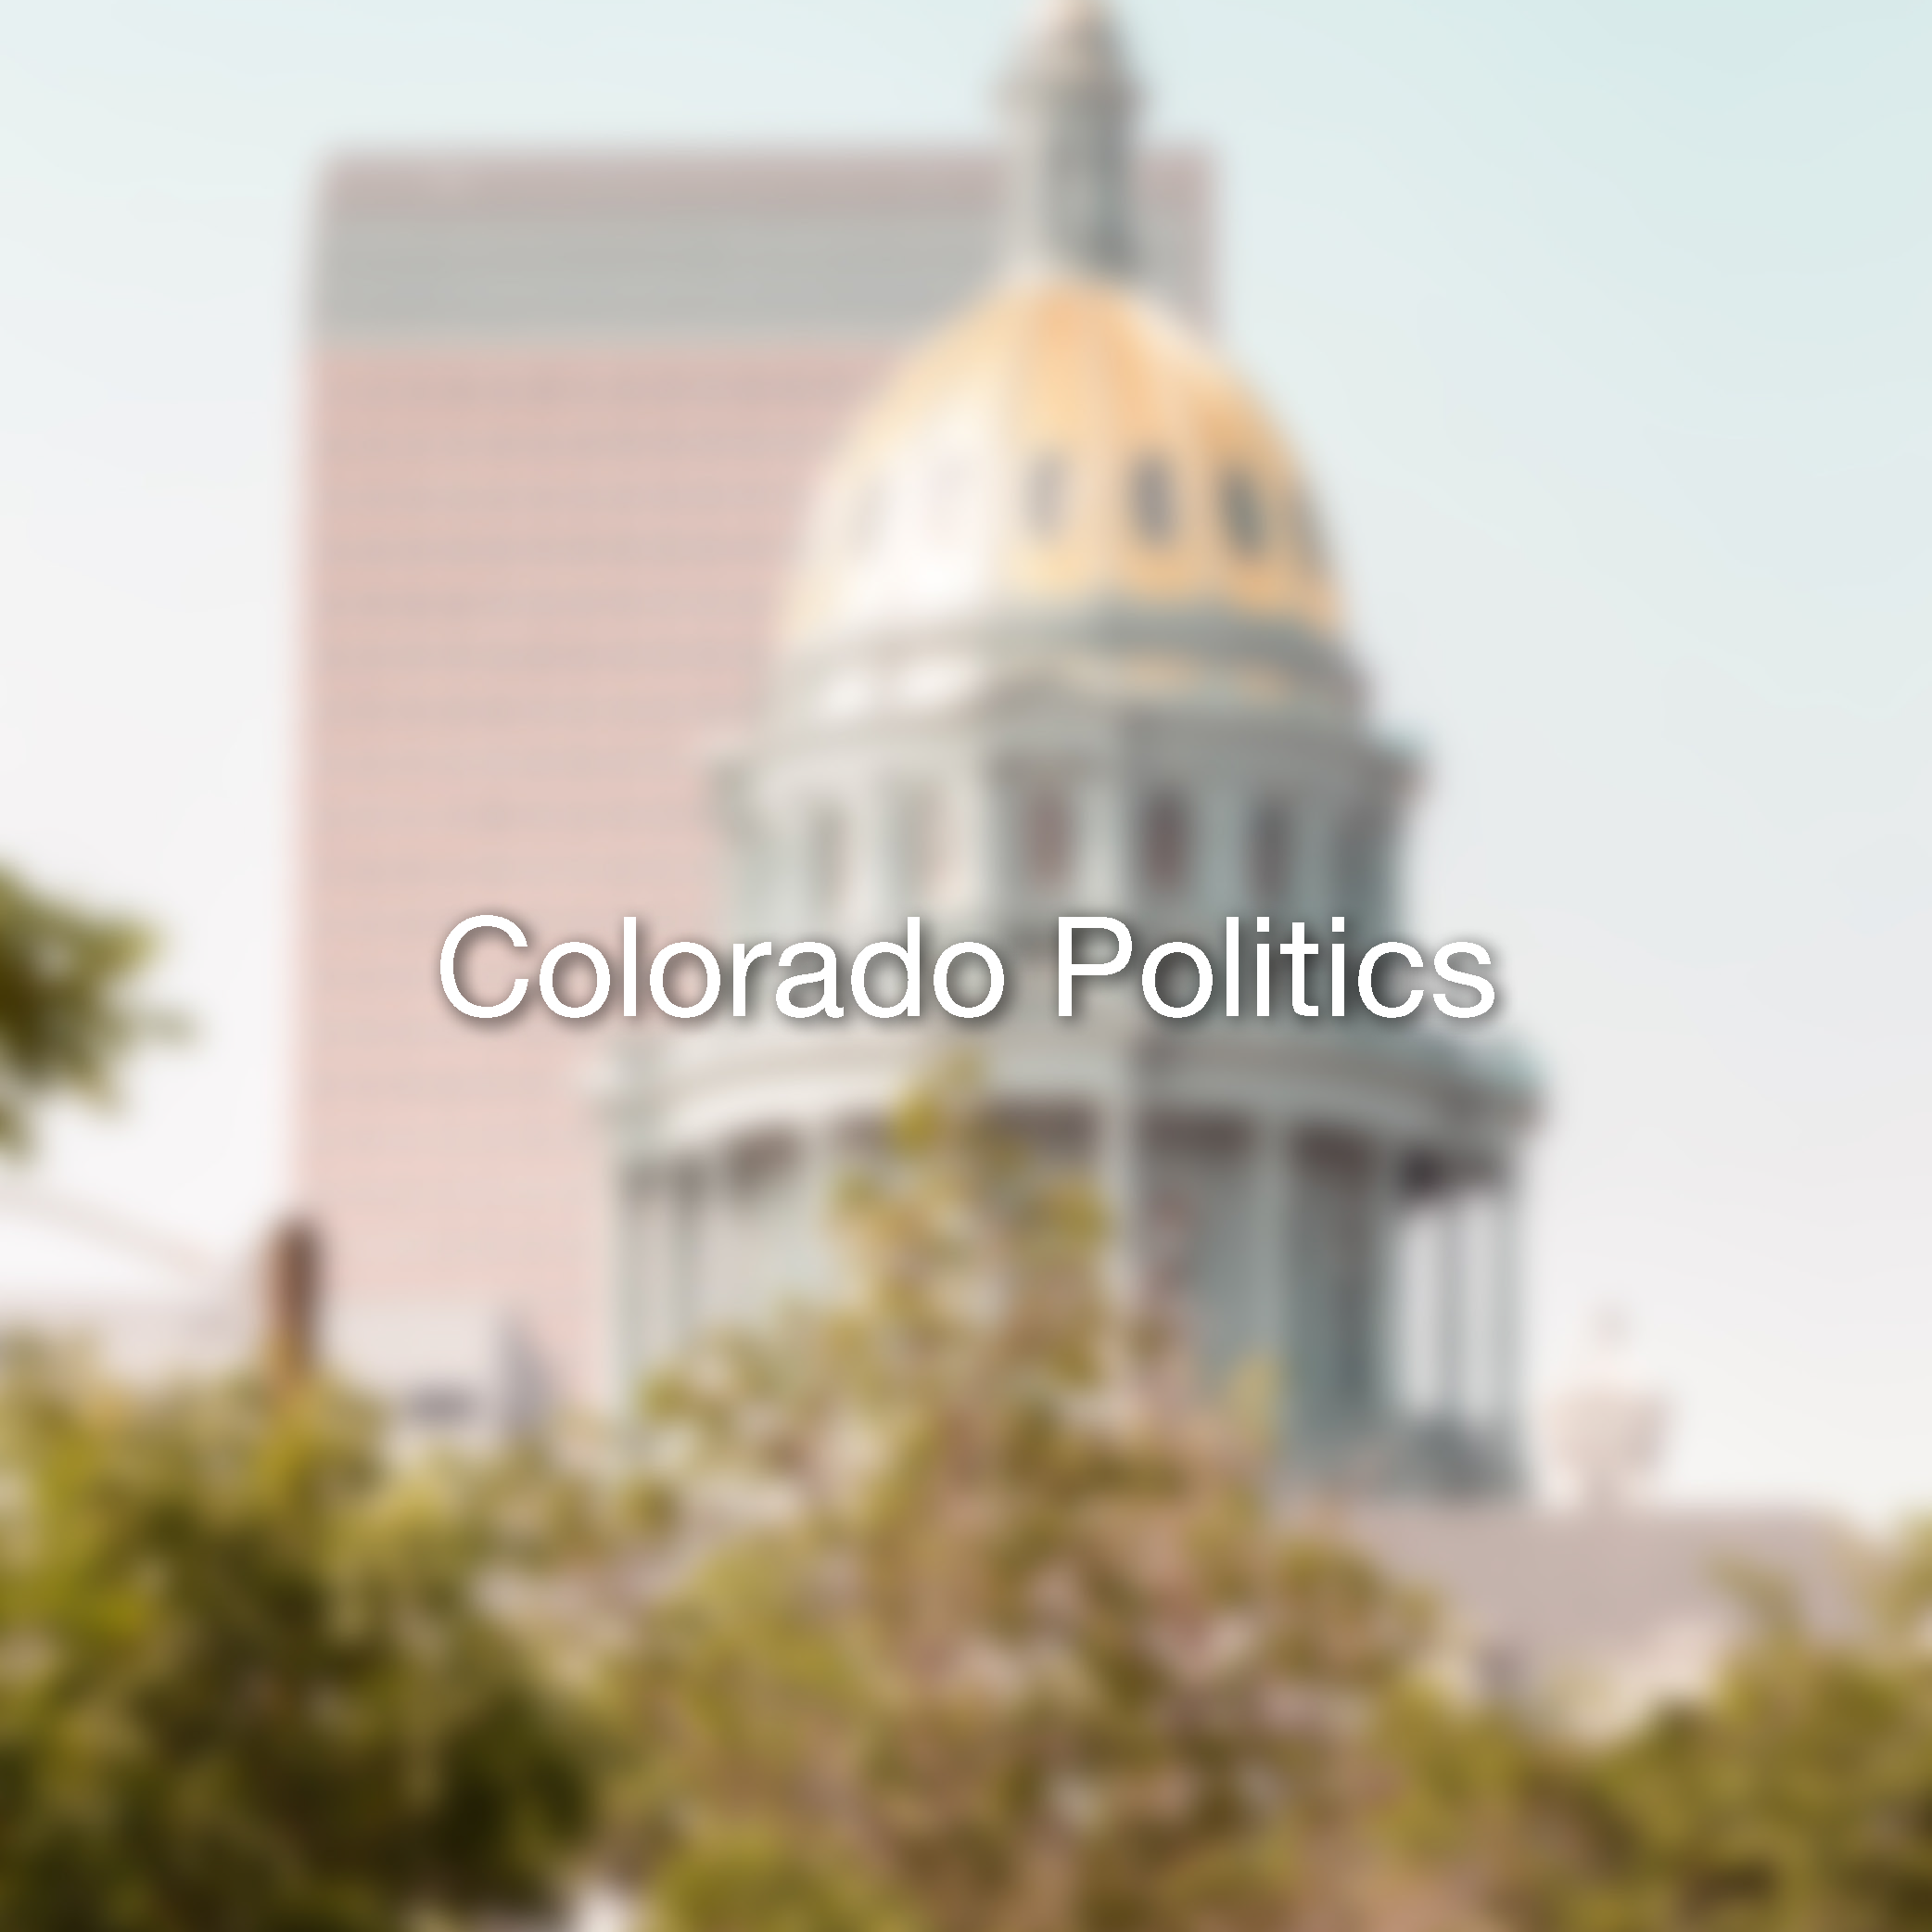 Colorado Politics